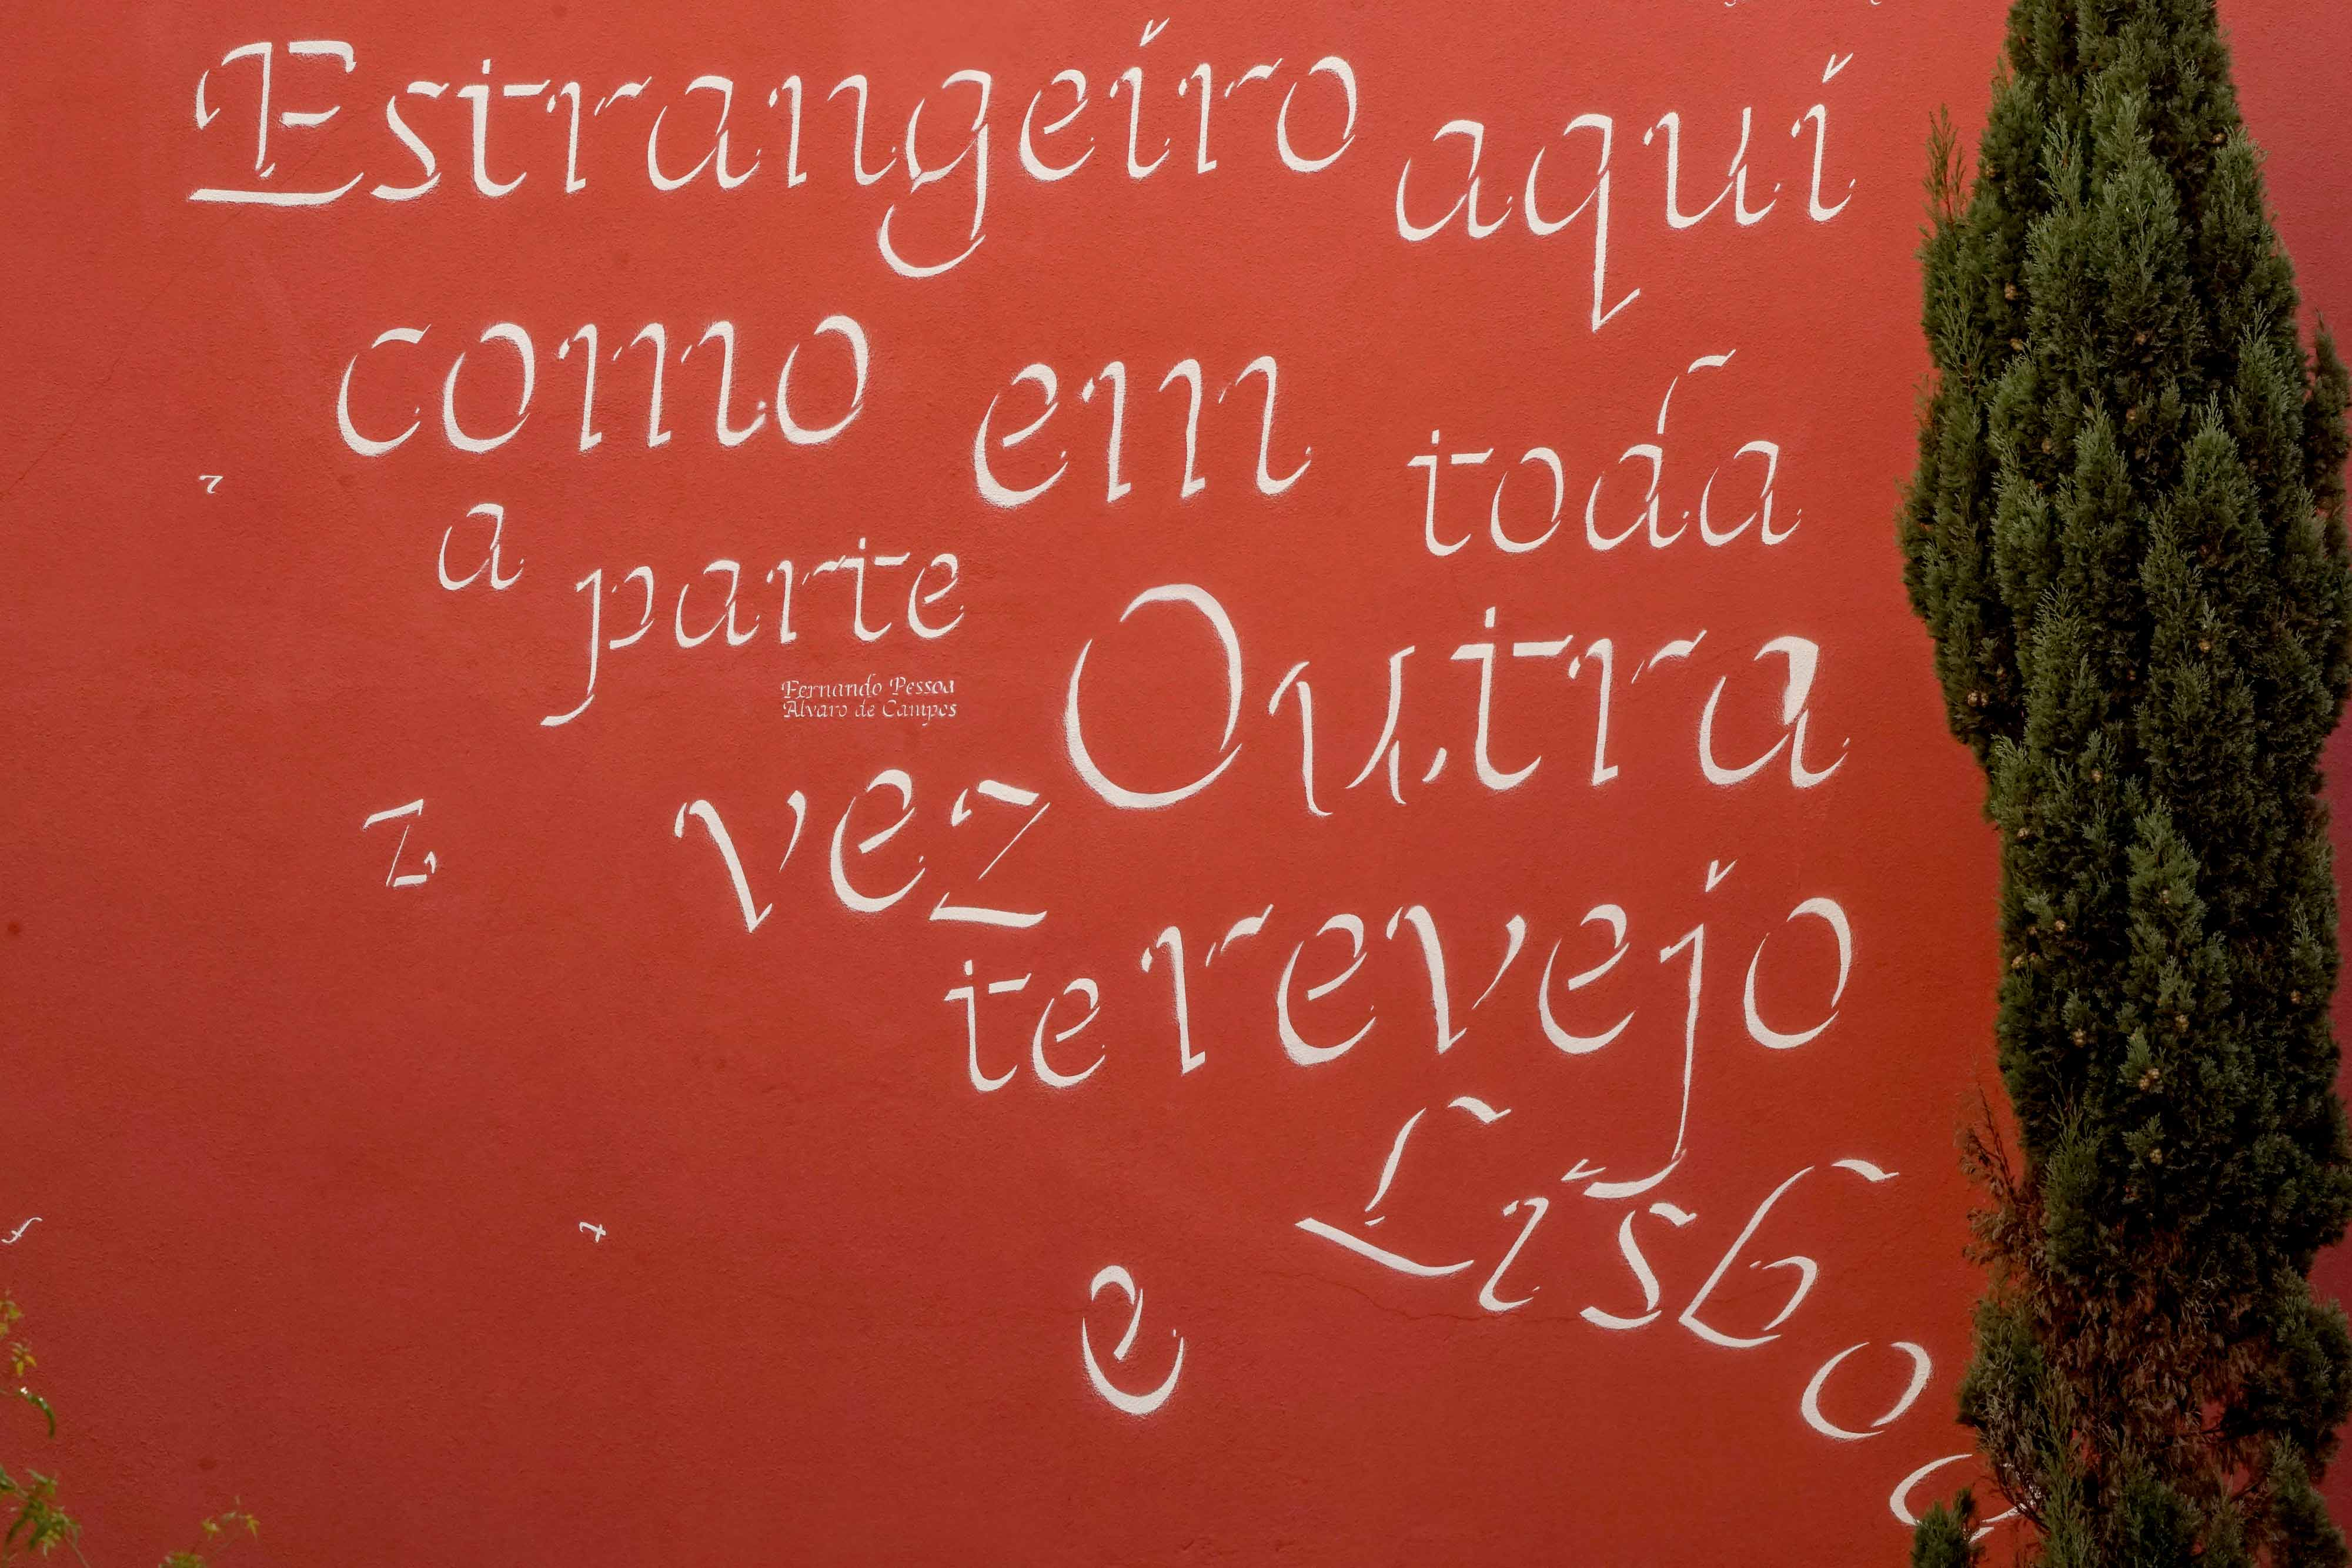 To Pessoa and Saramago: a poetry homage by Opiemme in Lisbon, Portugal. Artes & contextos Opiemme6